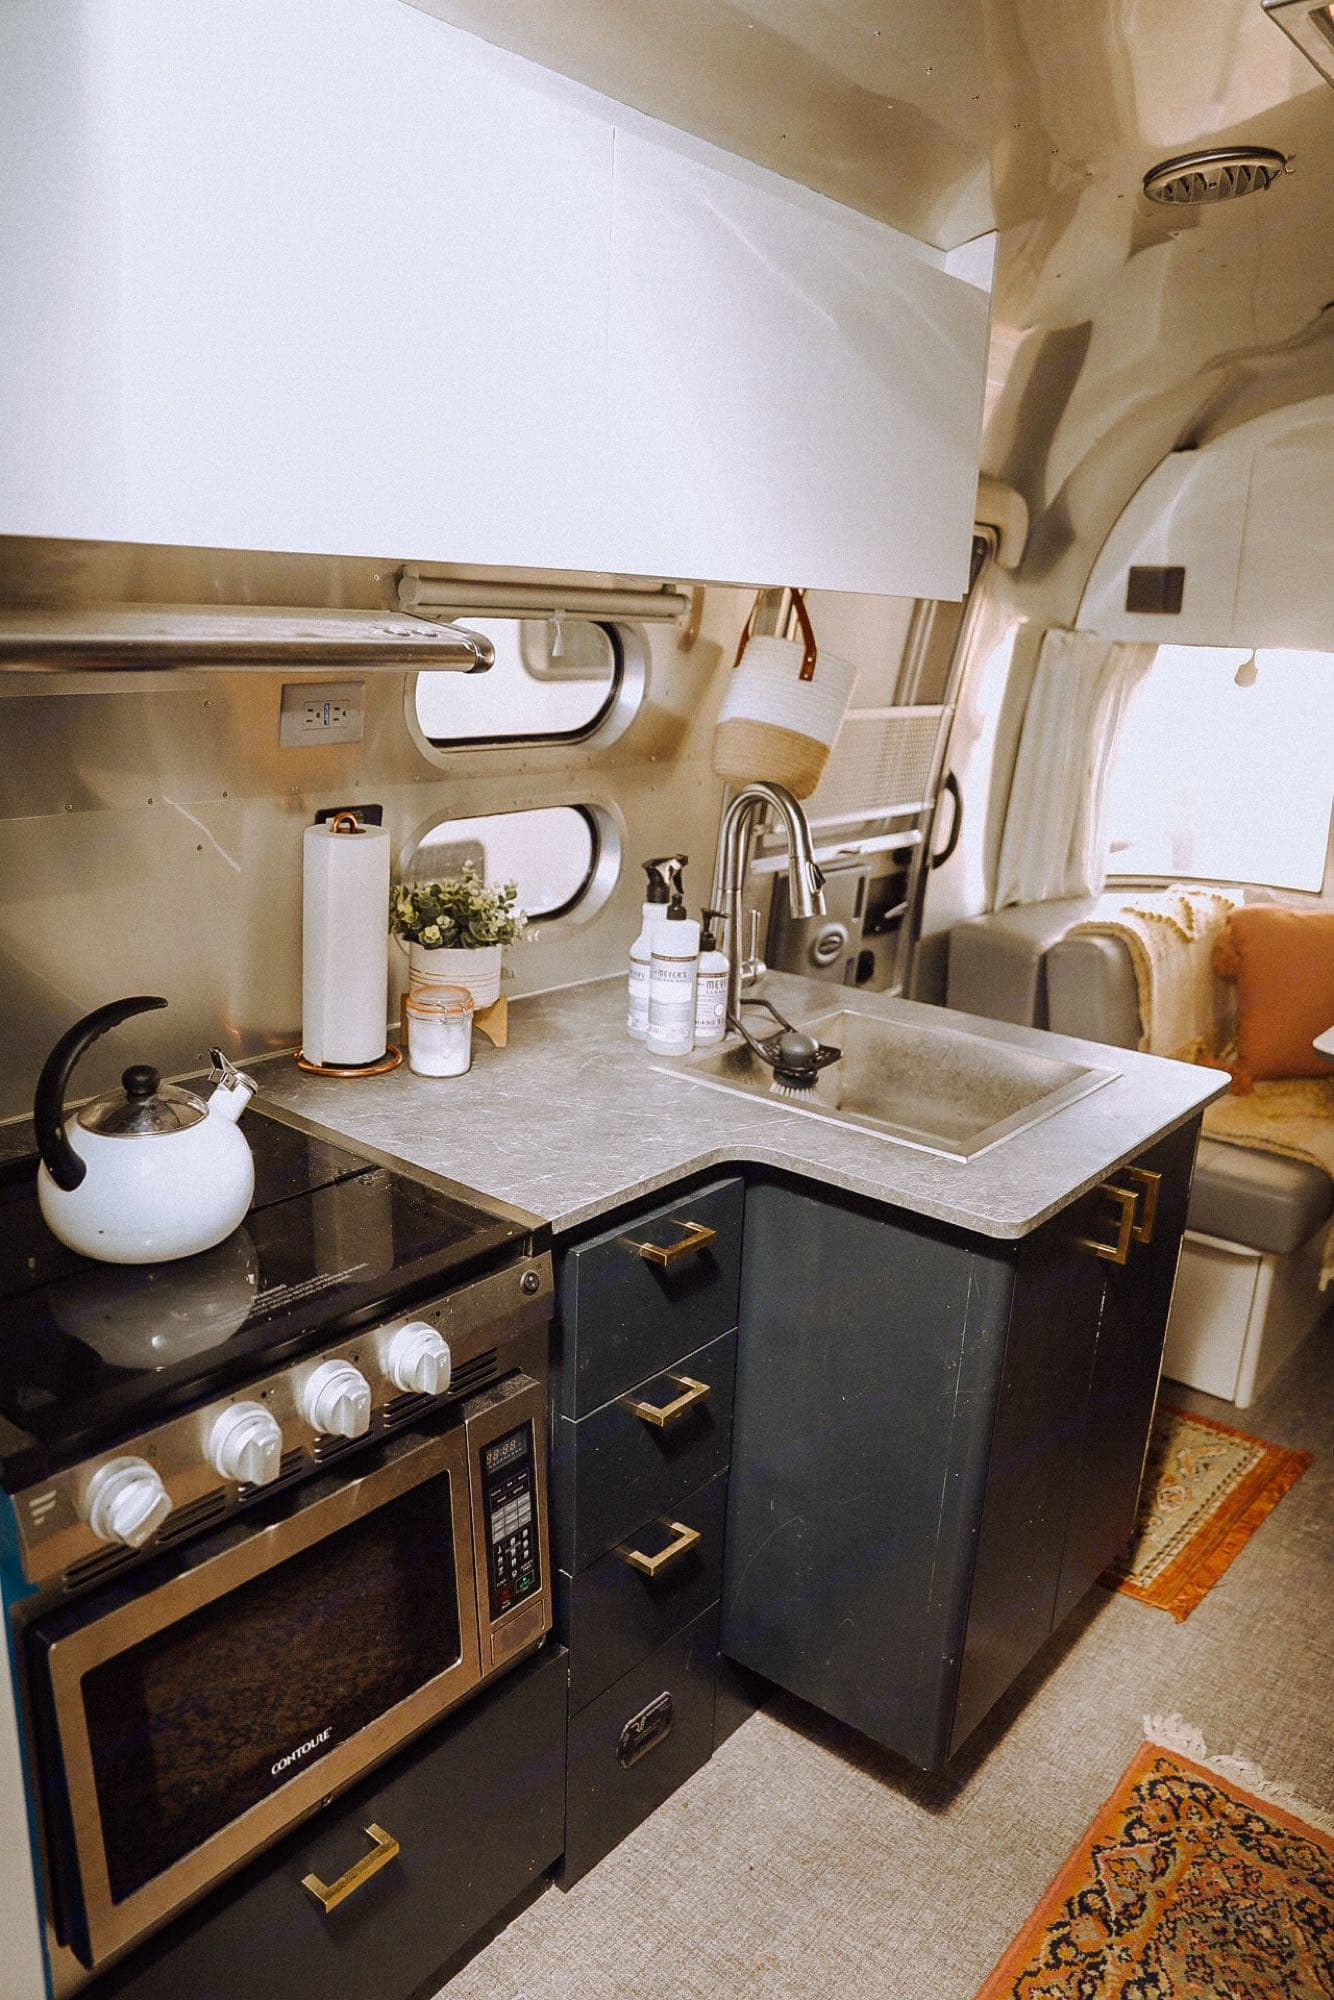 The sink has a cover that turns it into more counter space. . Airstream Flying Cloud 2021